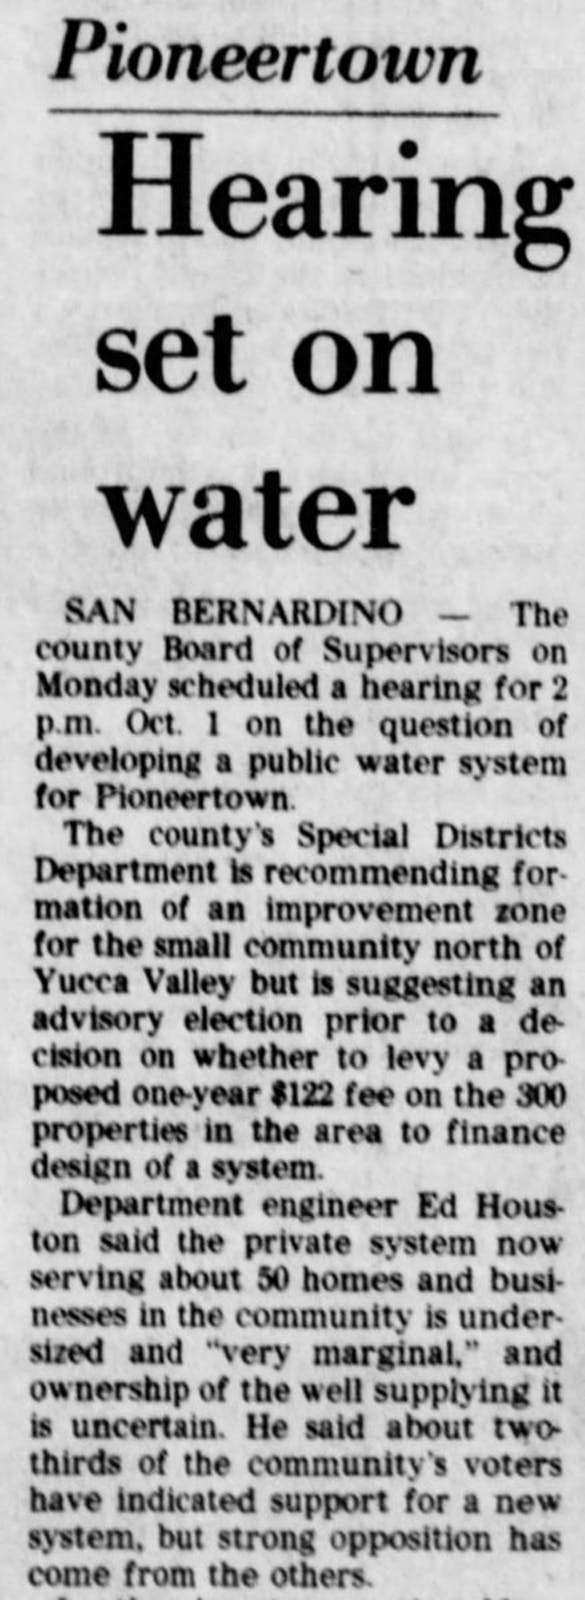 water hearing clipping